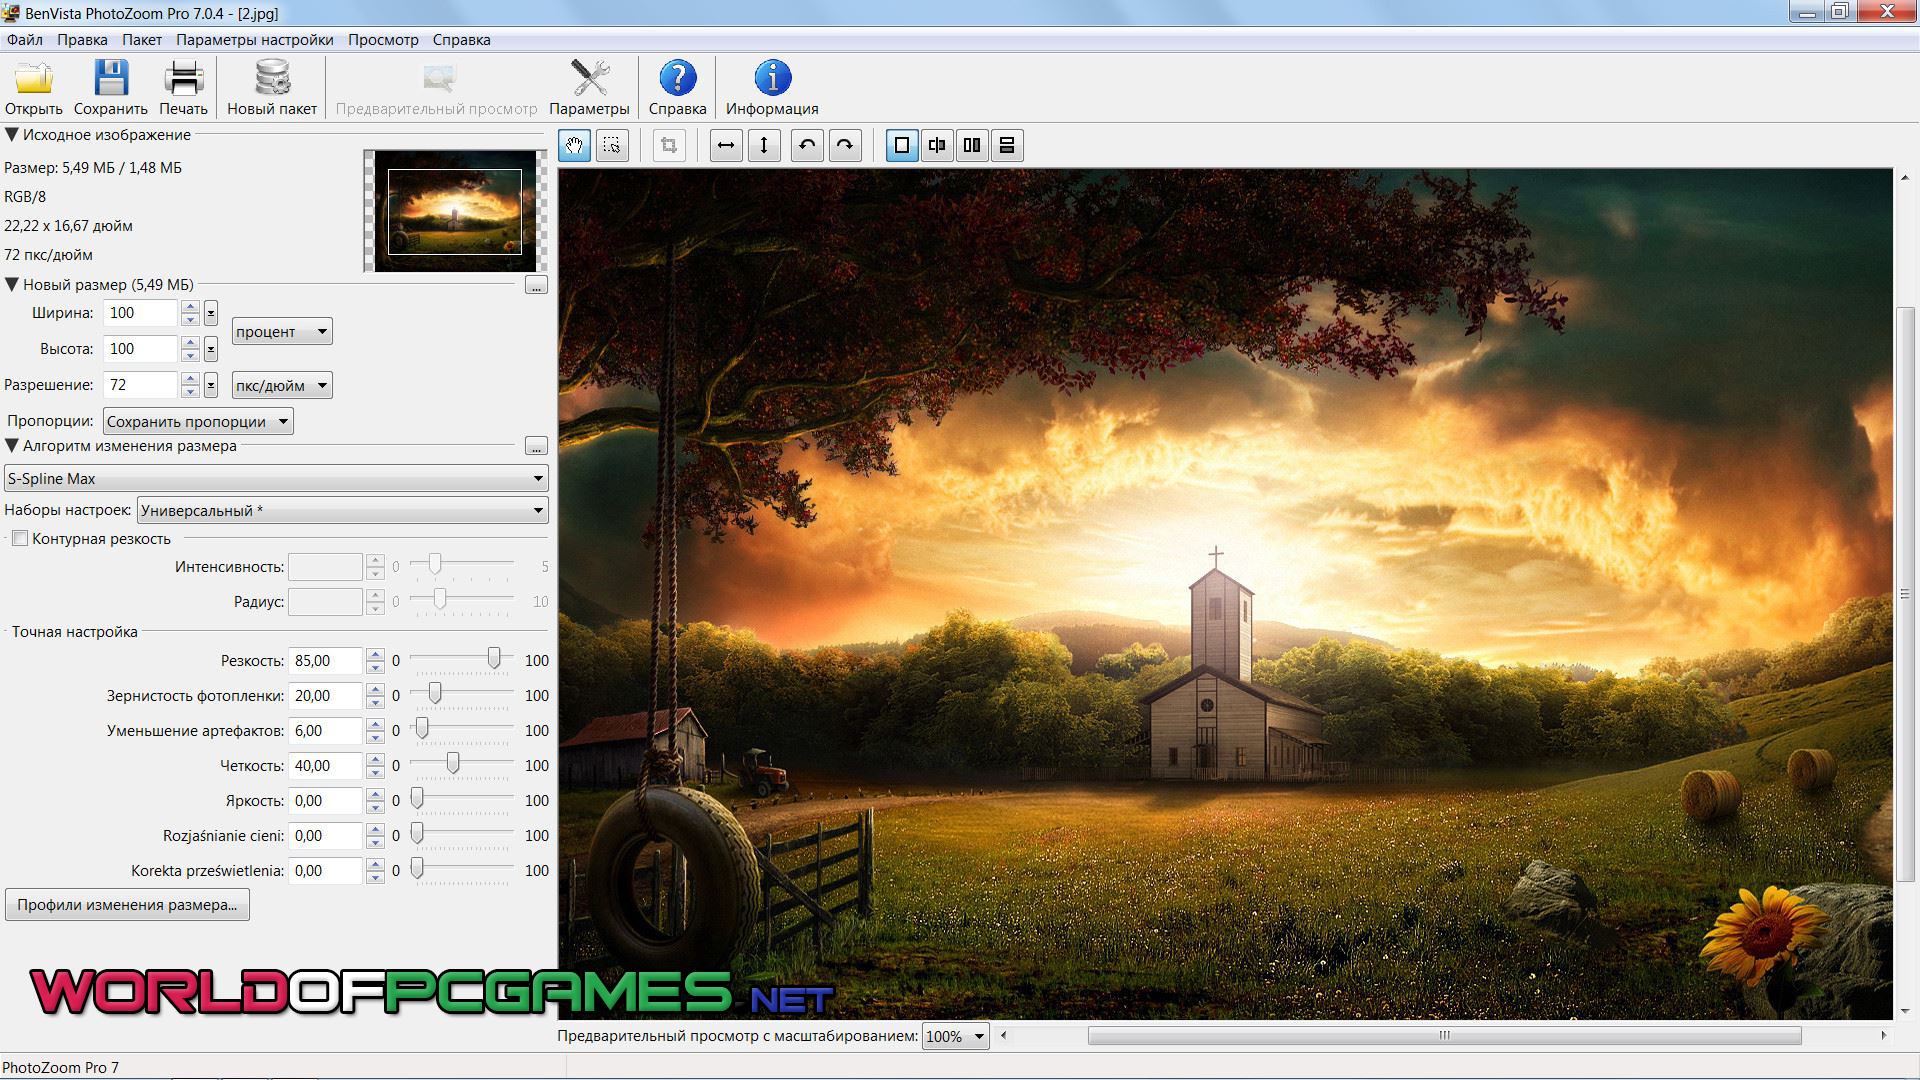 BenVista PhotoZoom Pro Free Download Latest By Worldofpcgames.com